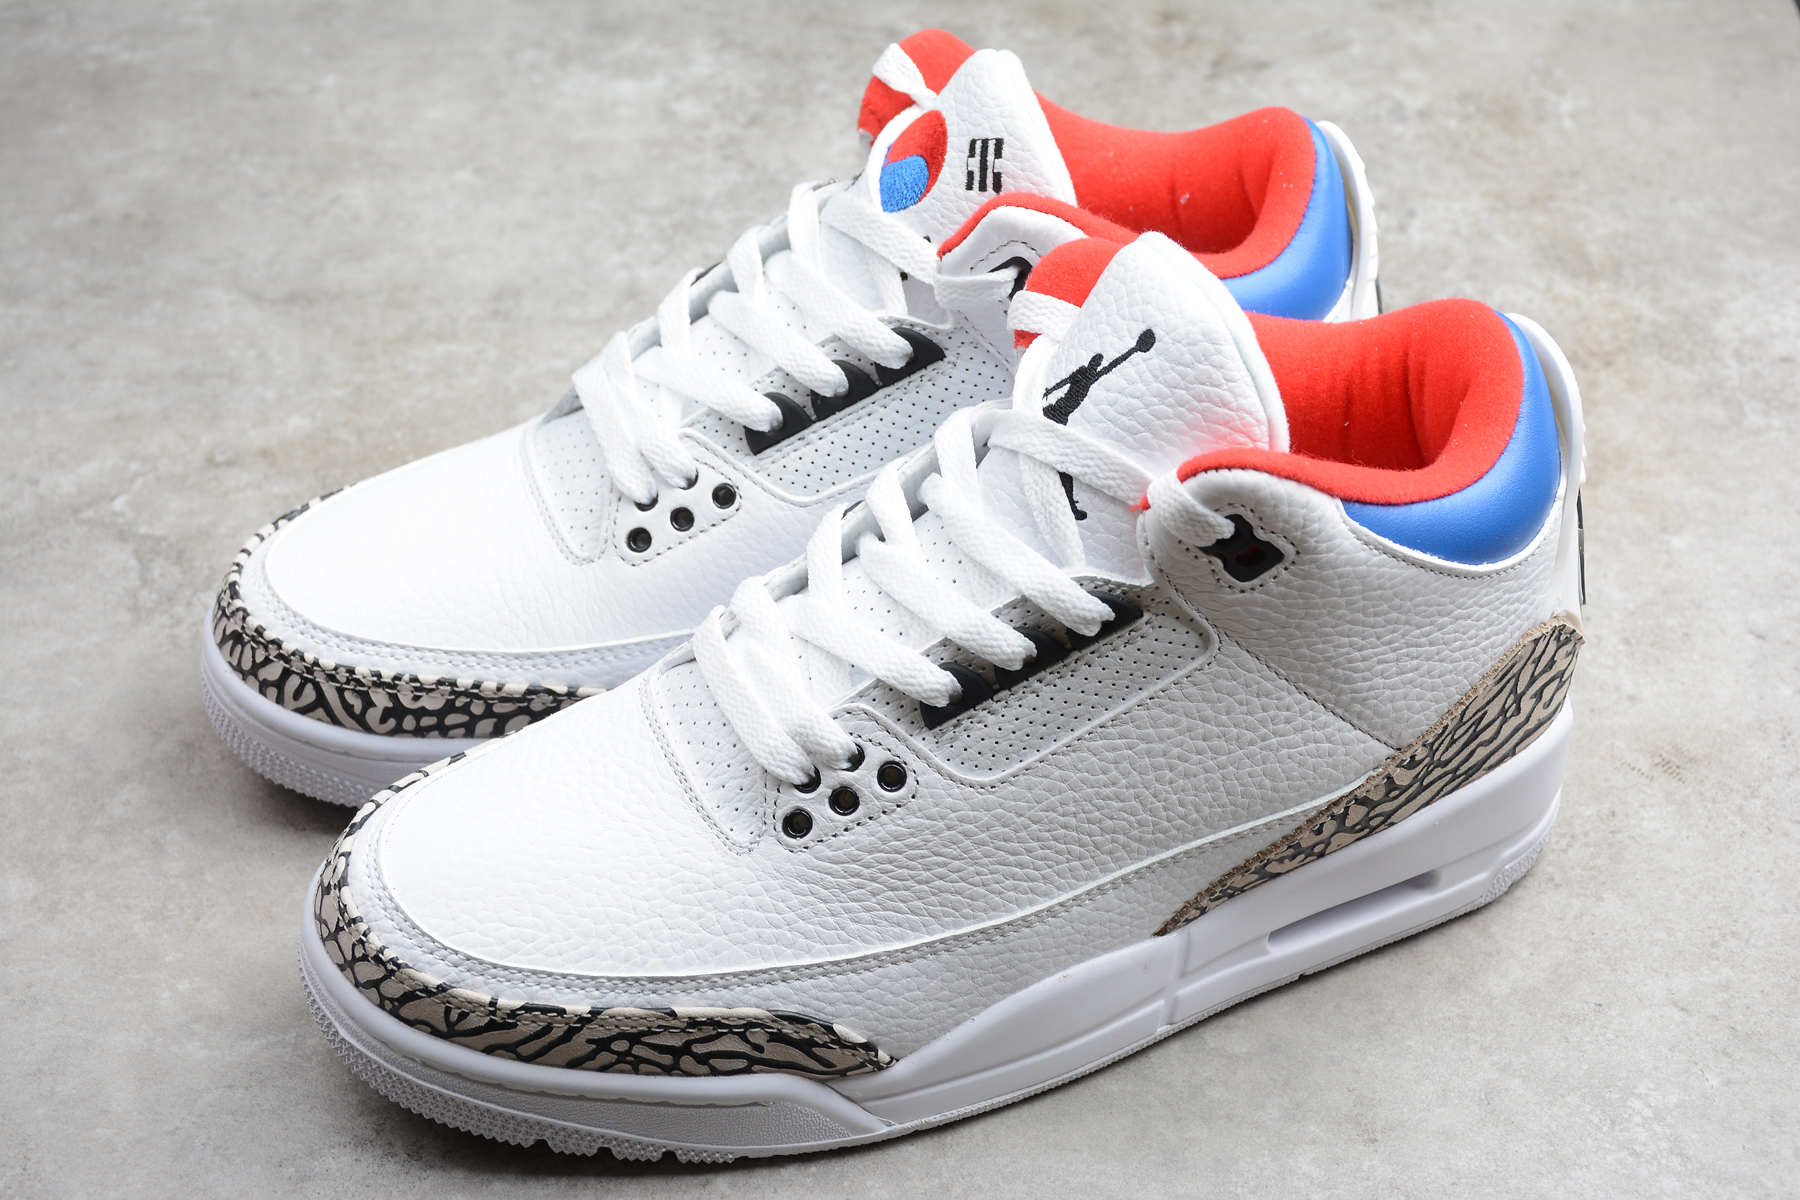 2020 Air Jordan 3 Retro White Blue Orange Shoes